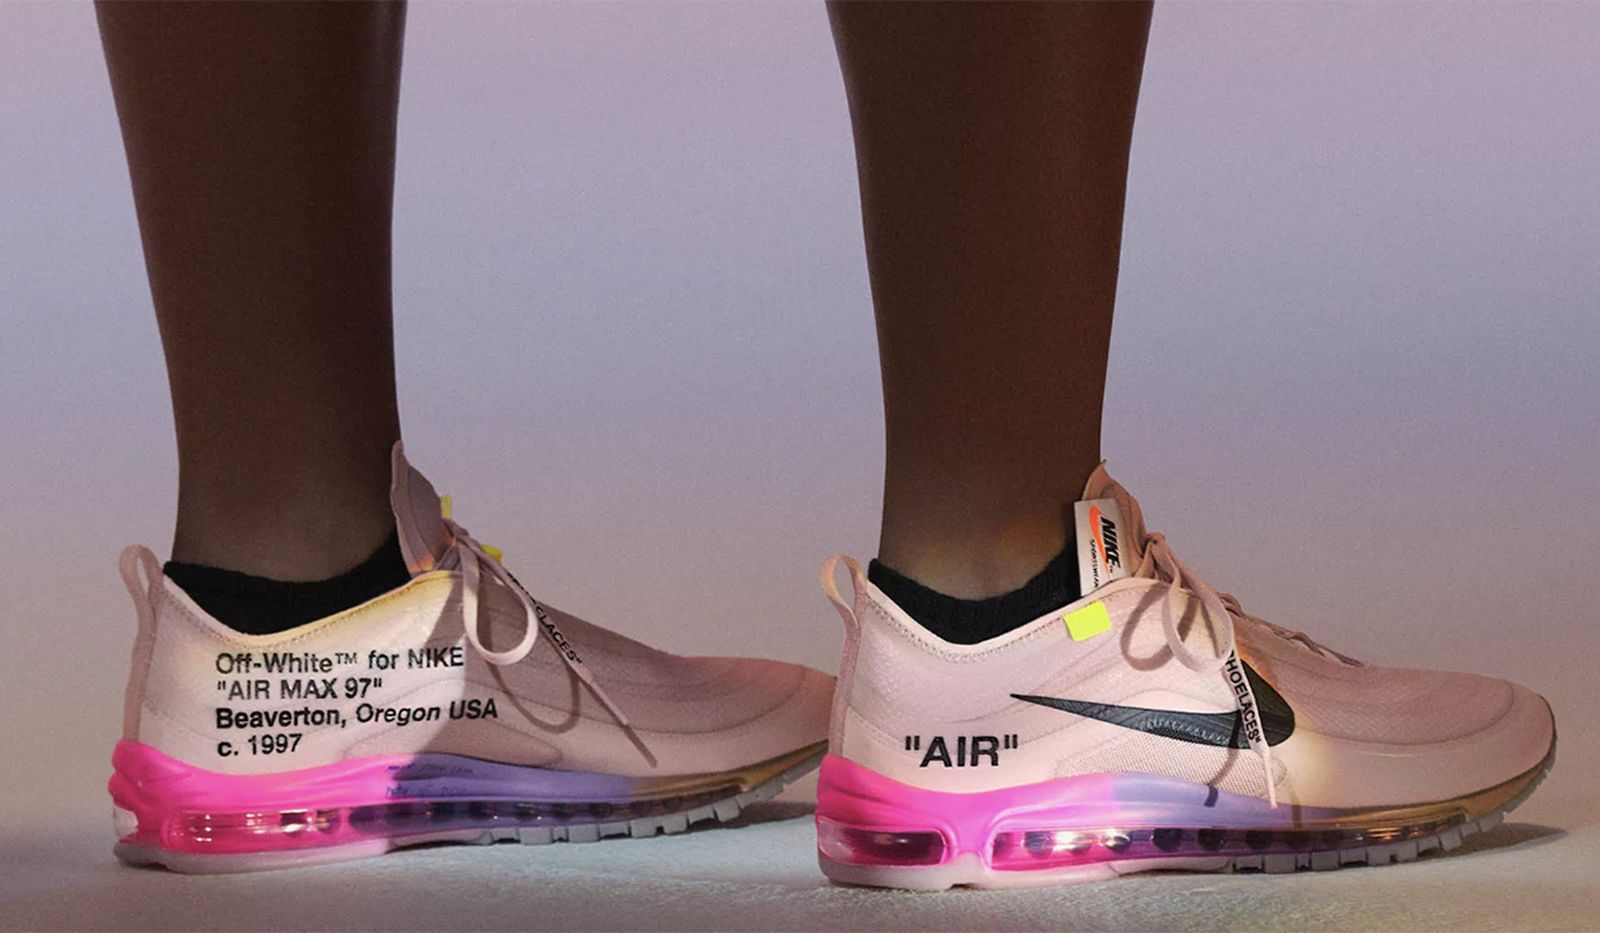 off white nike air max 97 queen release date price OFF-WHITE c/o Virgil Abloh serena williams